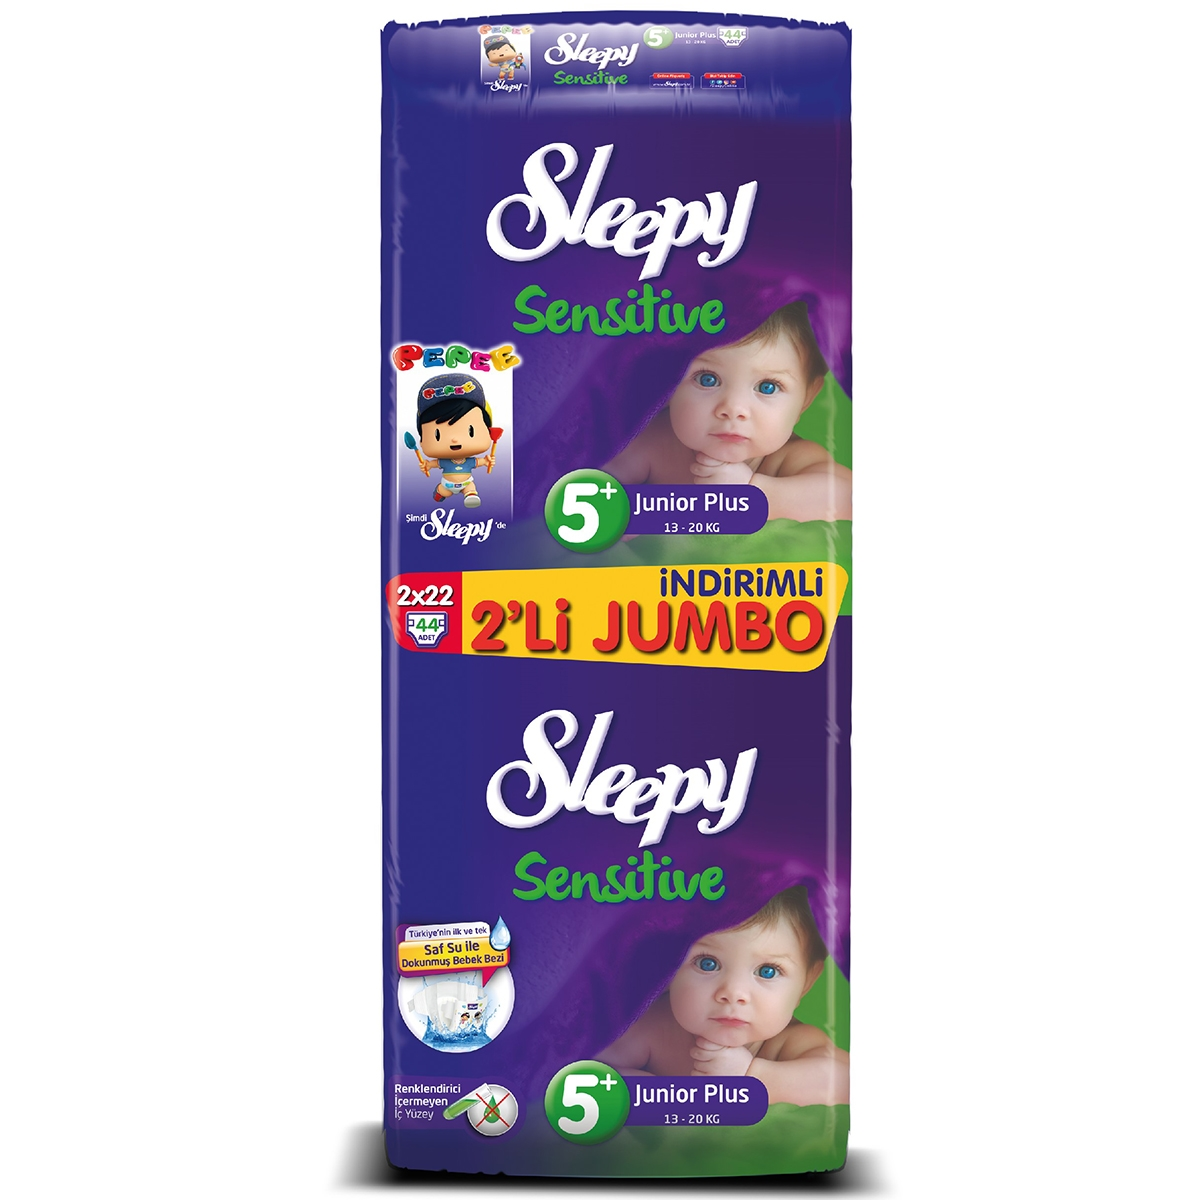 Sleepy 2'li Jumbo Bebek Bezi  5+ Beden Junior Plus 2x22